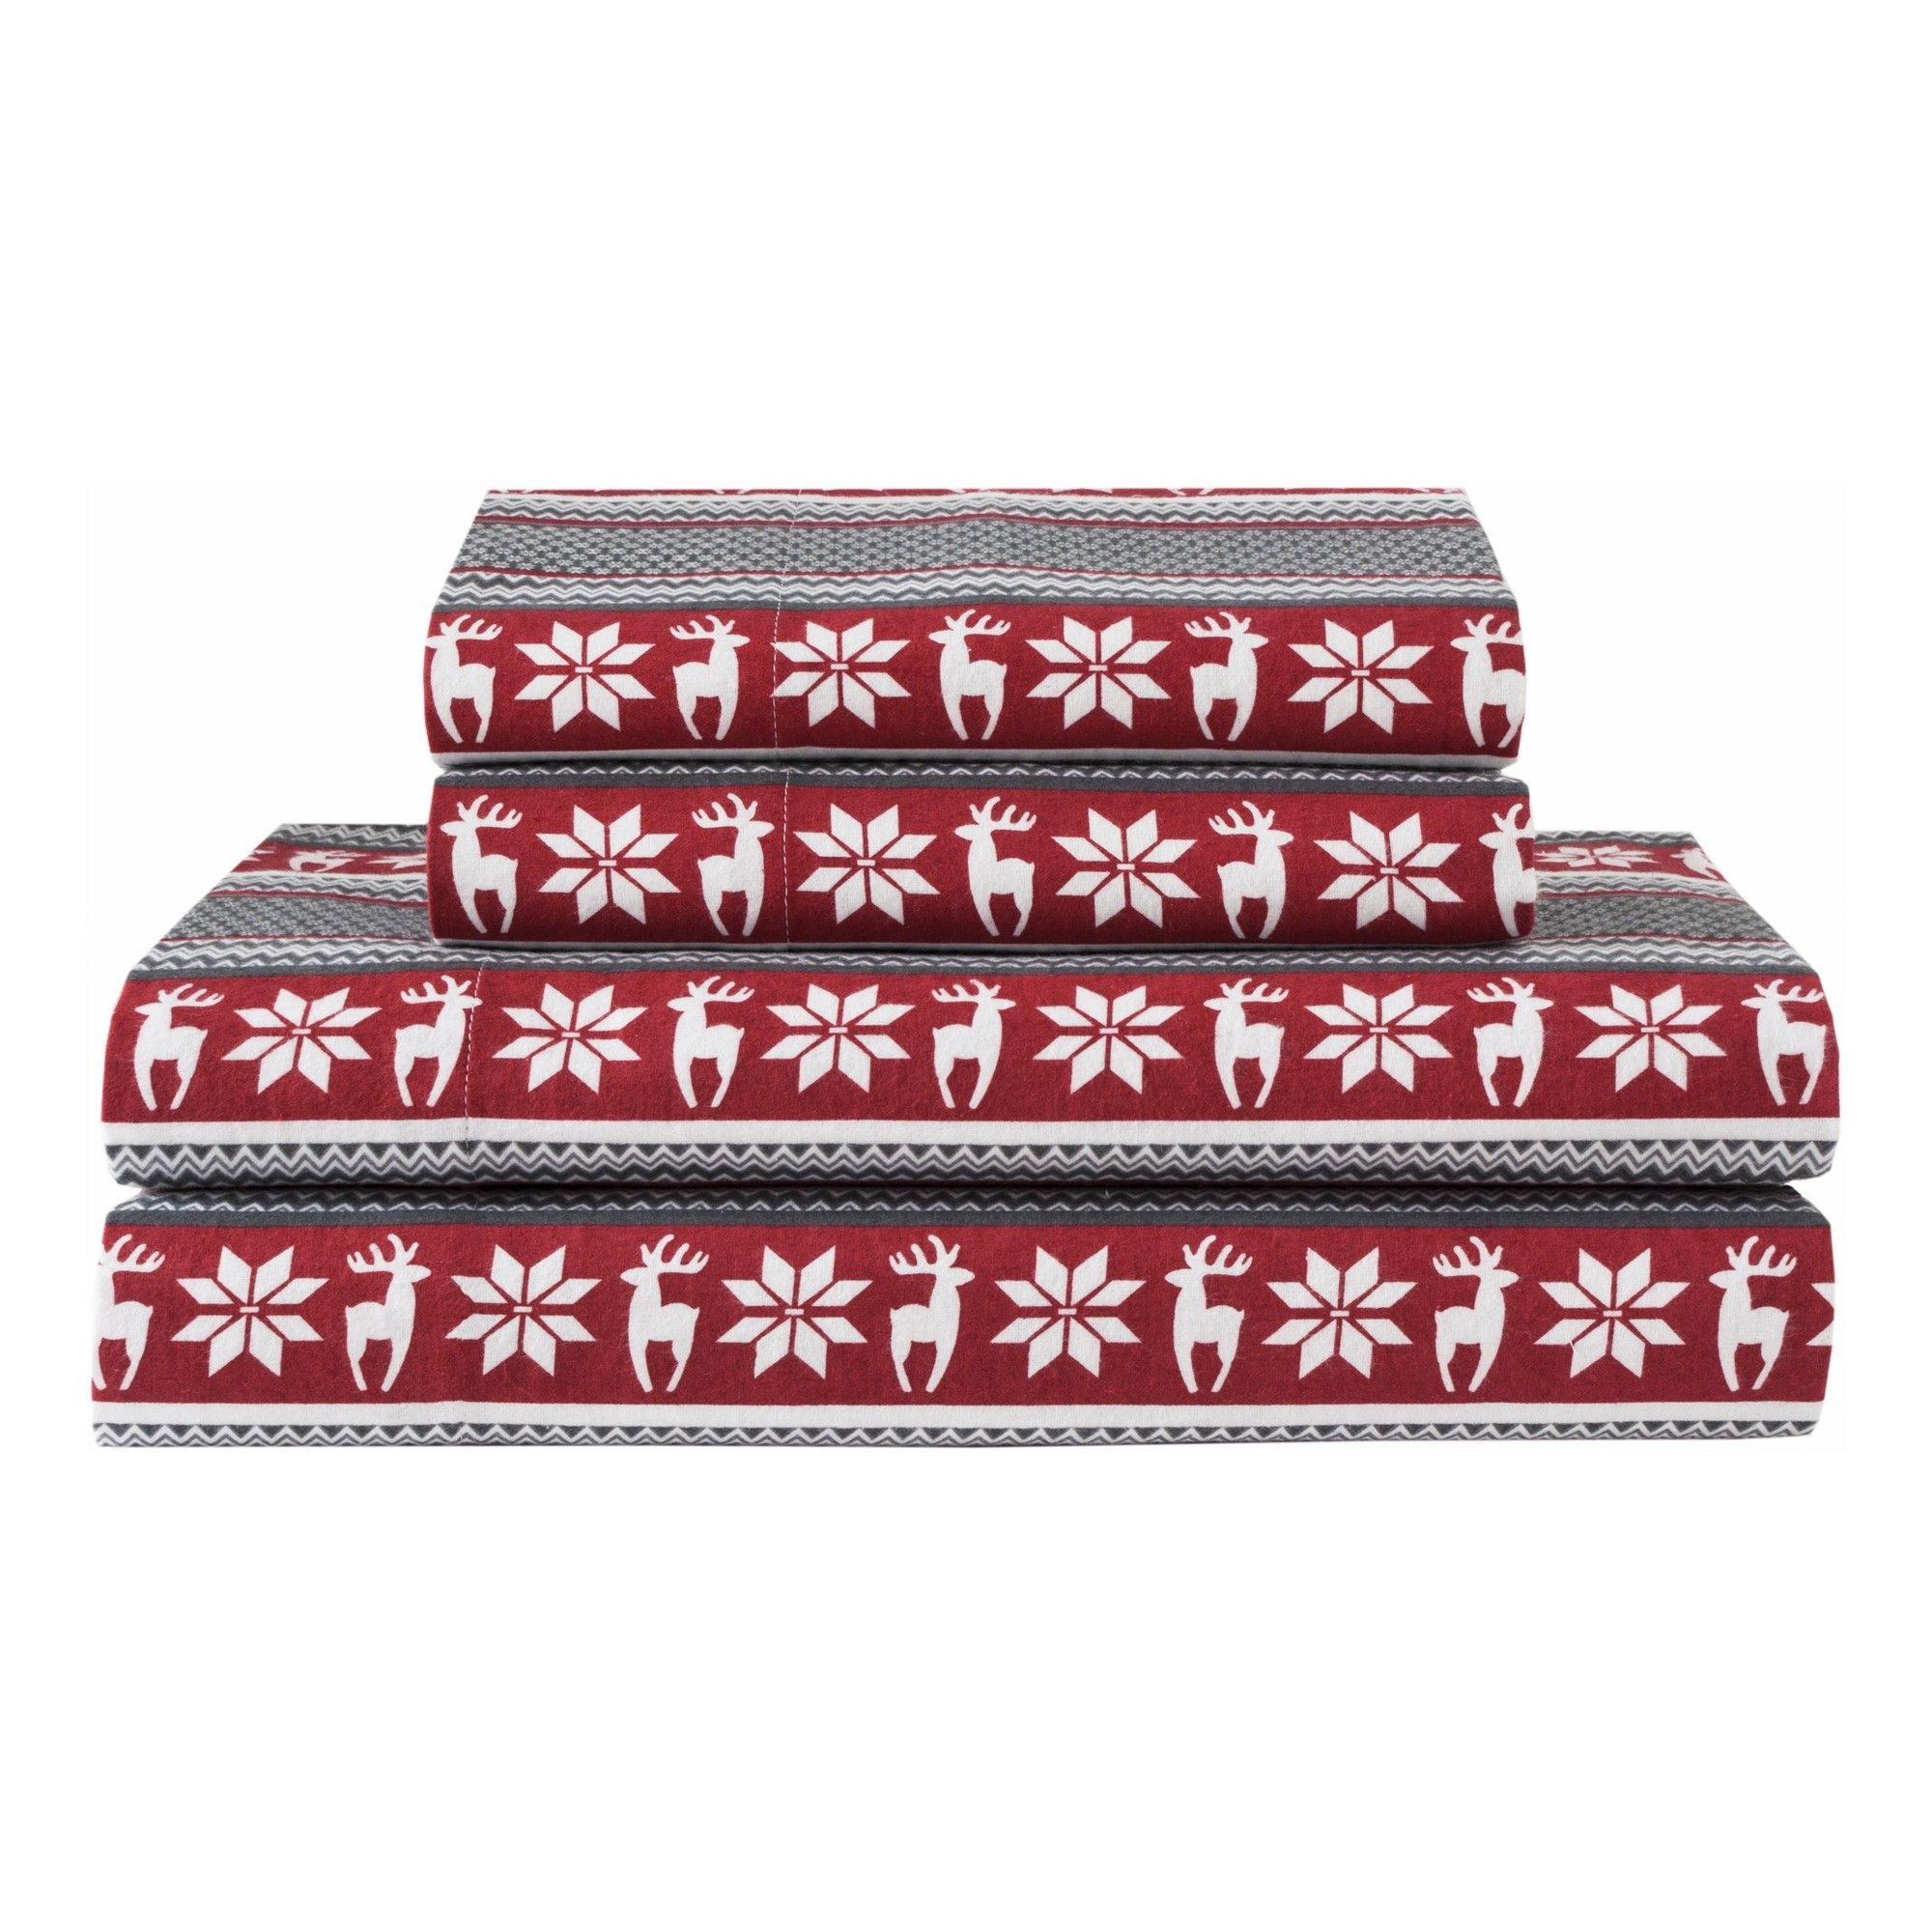 Red flannel sheets  Winter Nights Cotton Flannel Sheet Set Queen Red  Elite Home